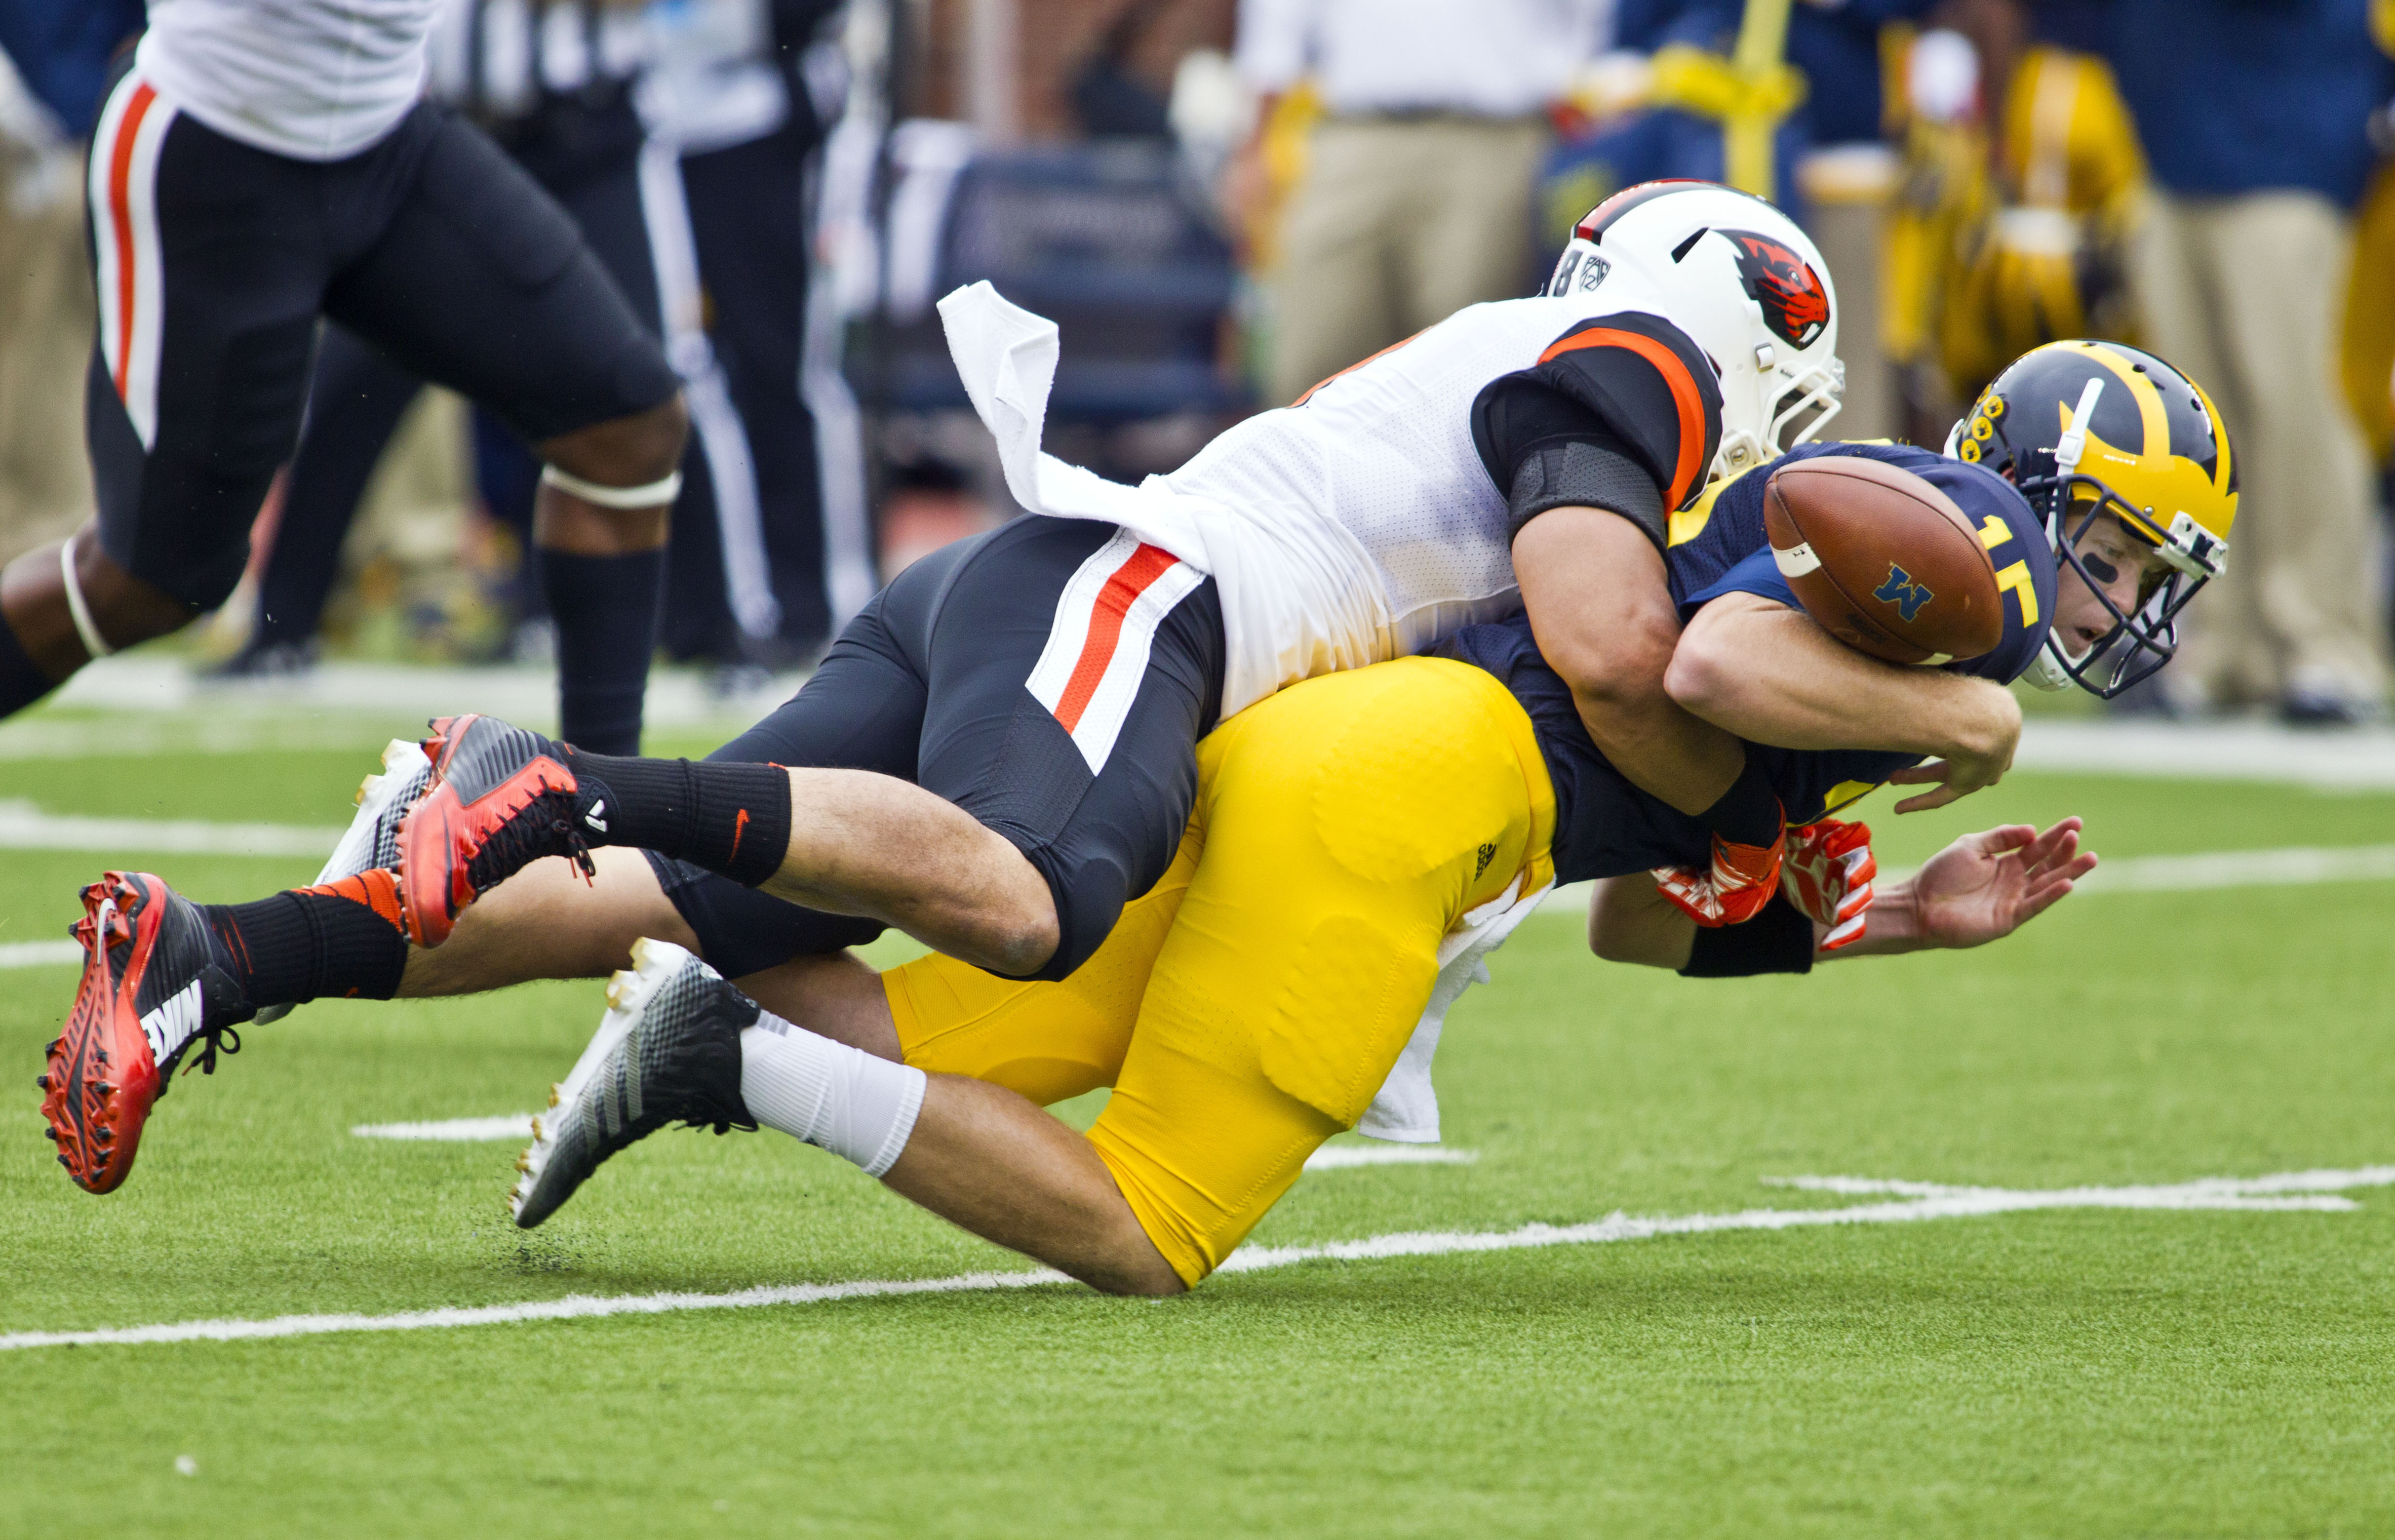 Oregon State linebacker Rommel Mageo, top, sacks Michigan quarterback Jake Rudock, causing a fumble, in the first quarter of an NCAA college football game in Ann Arbor, Mich., Saturday, Sept. 12, 2015. (AP Photo/Tony Ding)